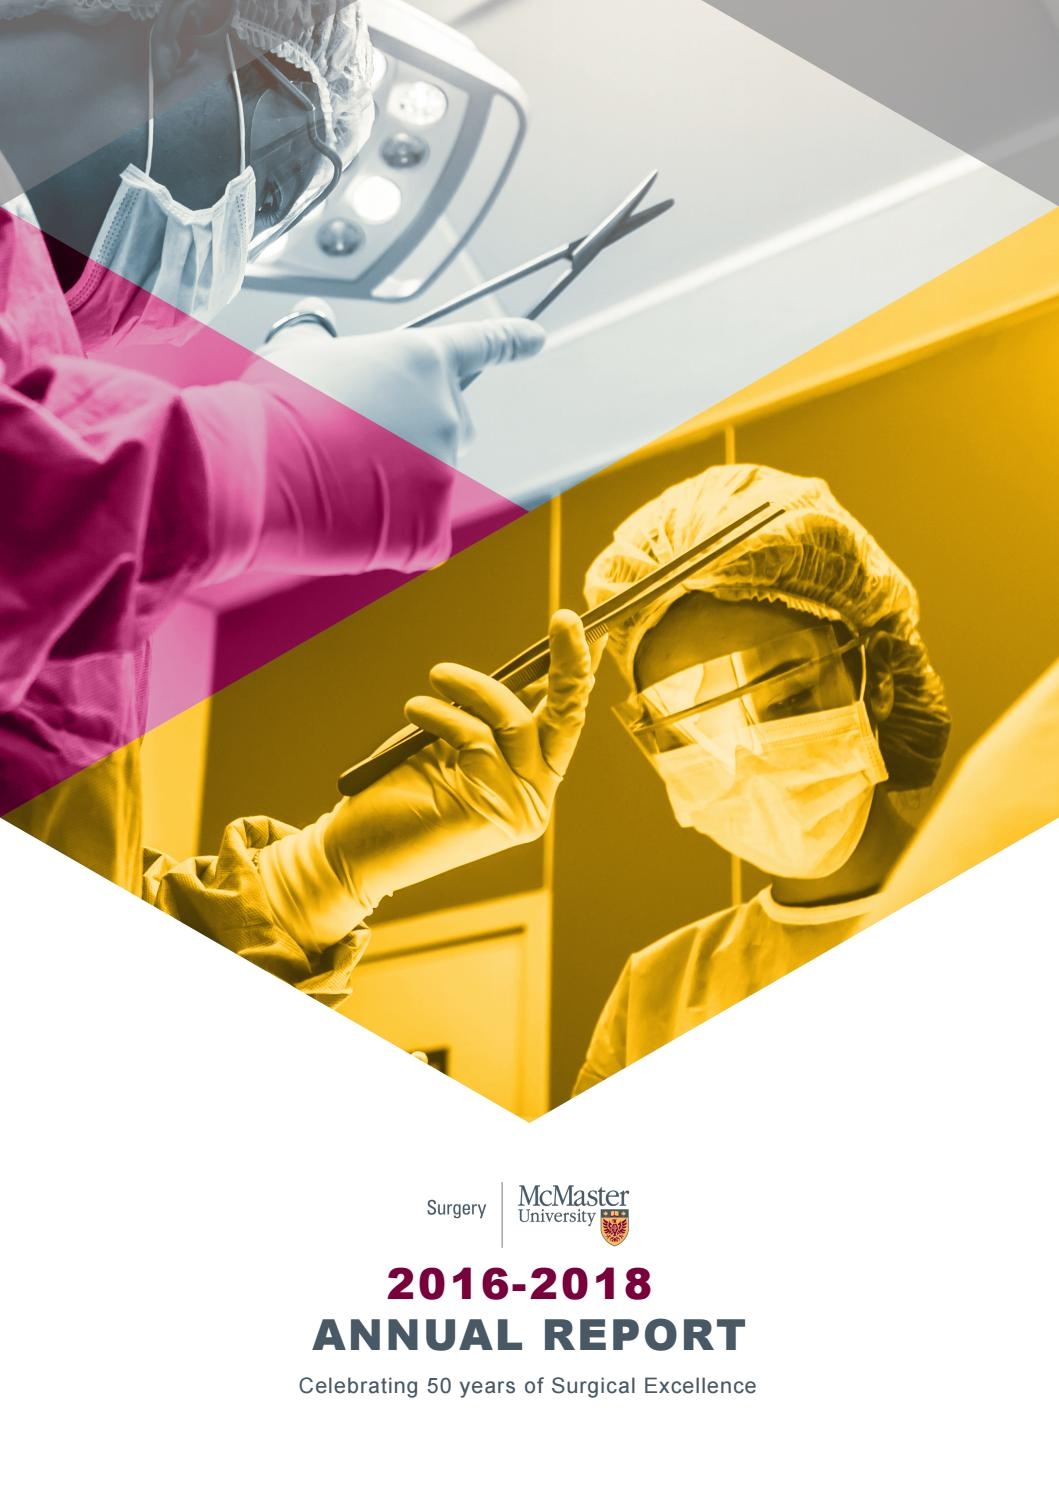 Annual Report 2016 2018 By Mcmaster University Department Of